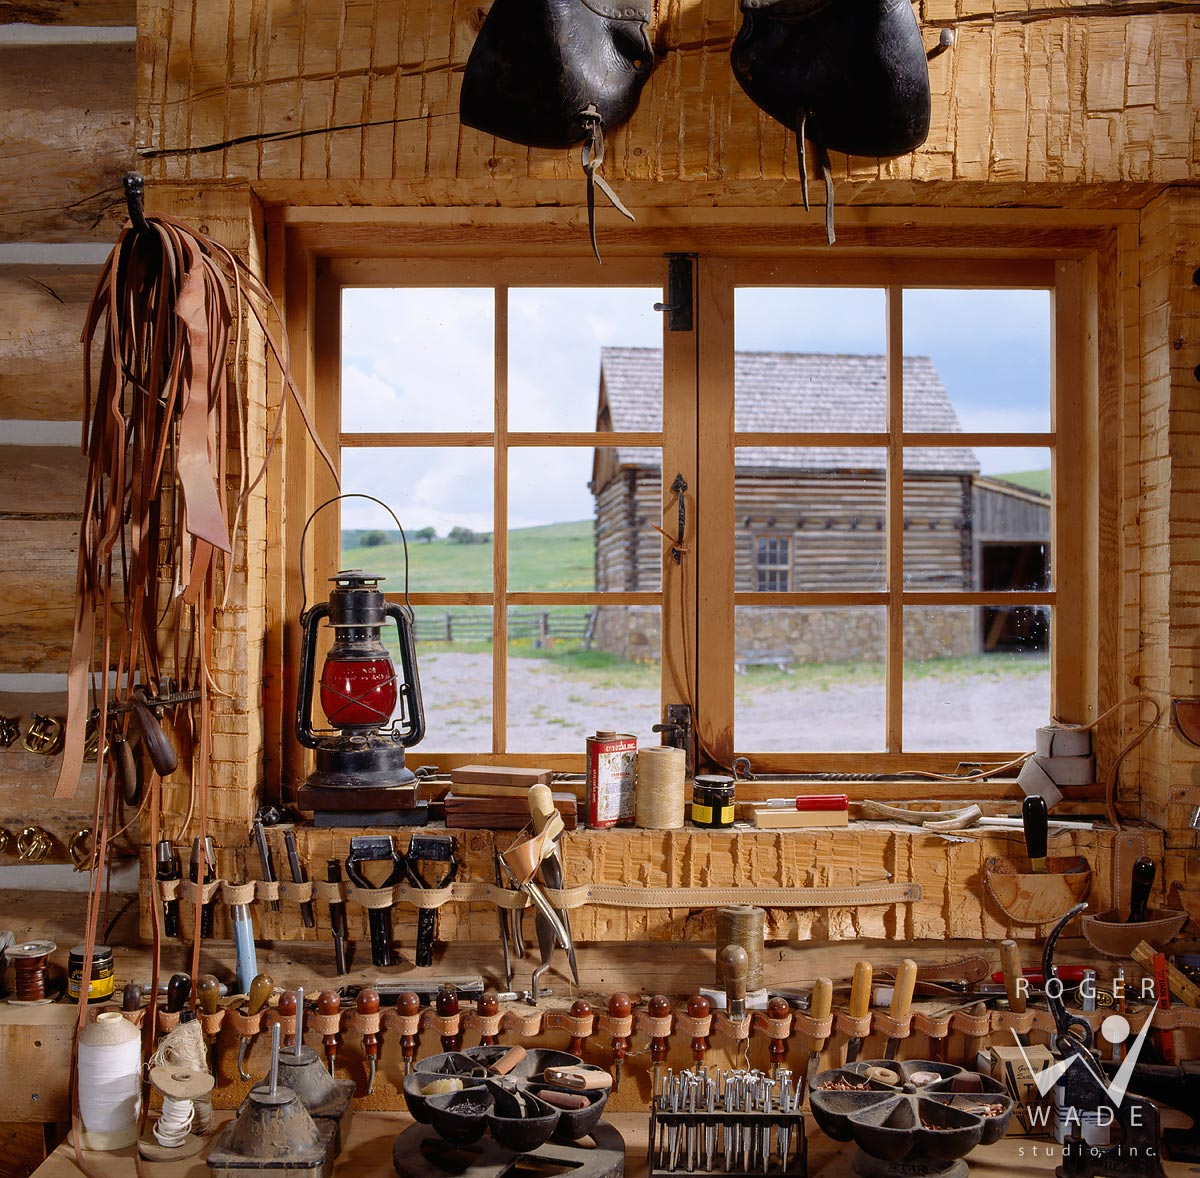 roger wade studio interior photography of rustic cabin leather shop vignette with tools, private ranch, ridgway, colorado, photographed for double shoe cattle company